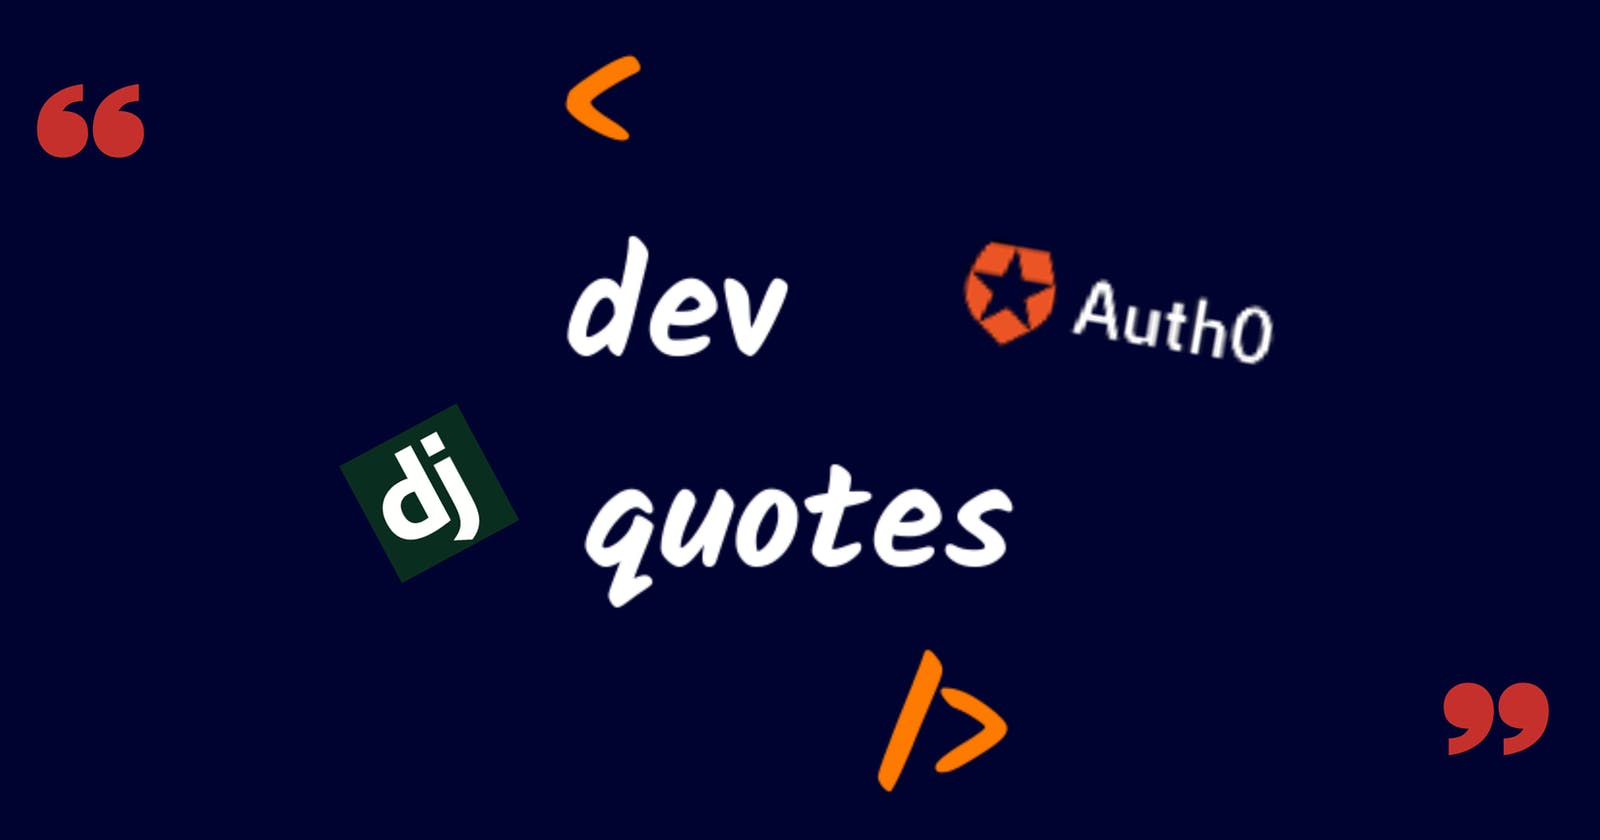 Dev Quotes: A platform for developers to quote and get inspired -Auth0 x Hashnode Hackathon